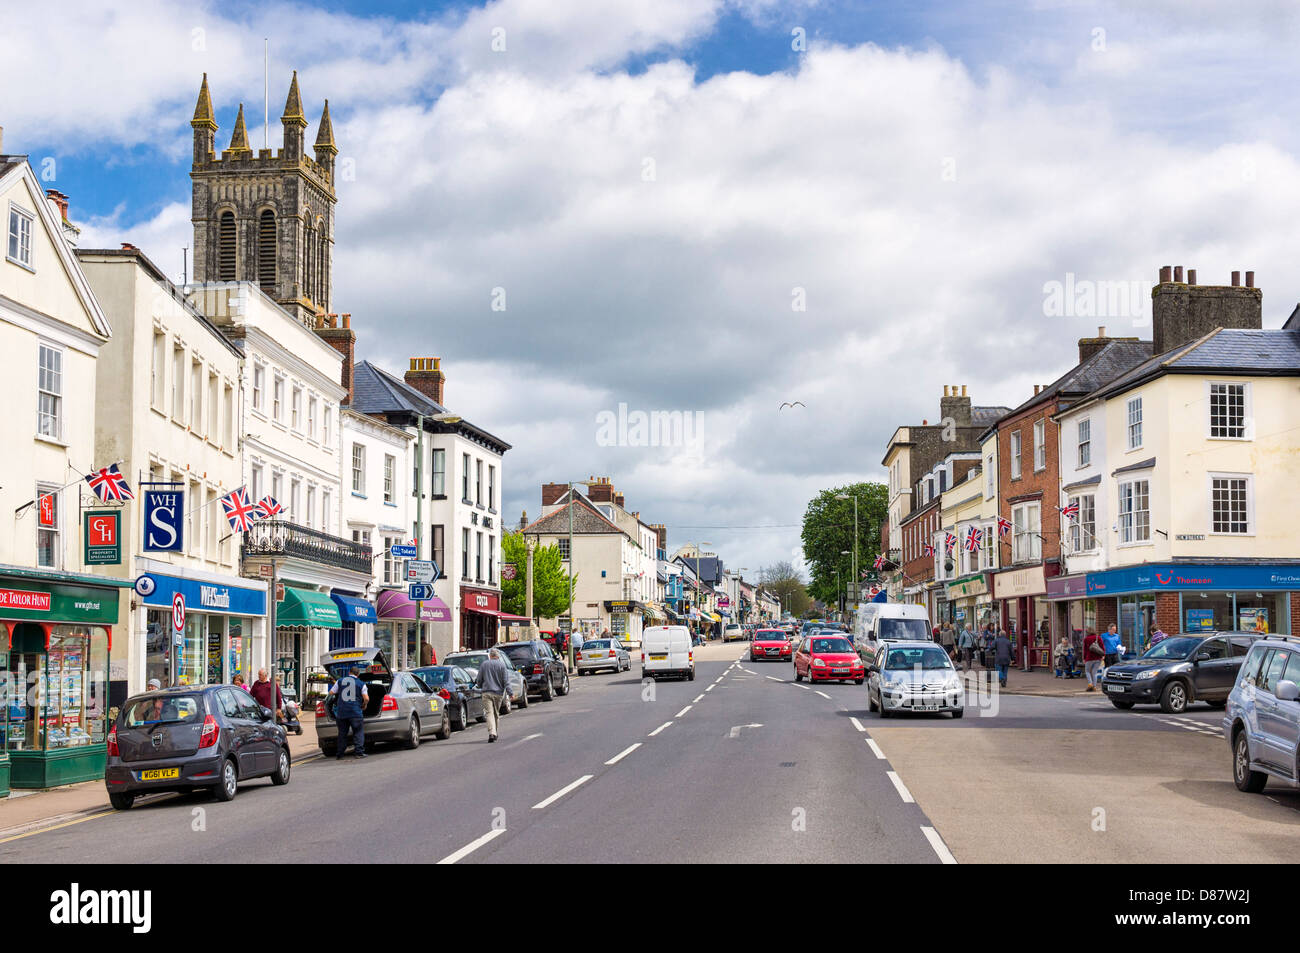 Honiton, Devon, England, UK - the town and main high street Stock Photo